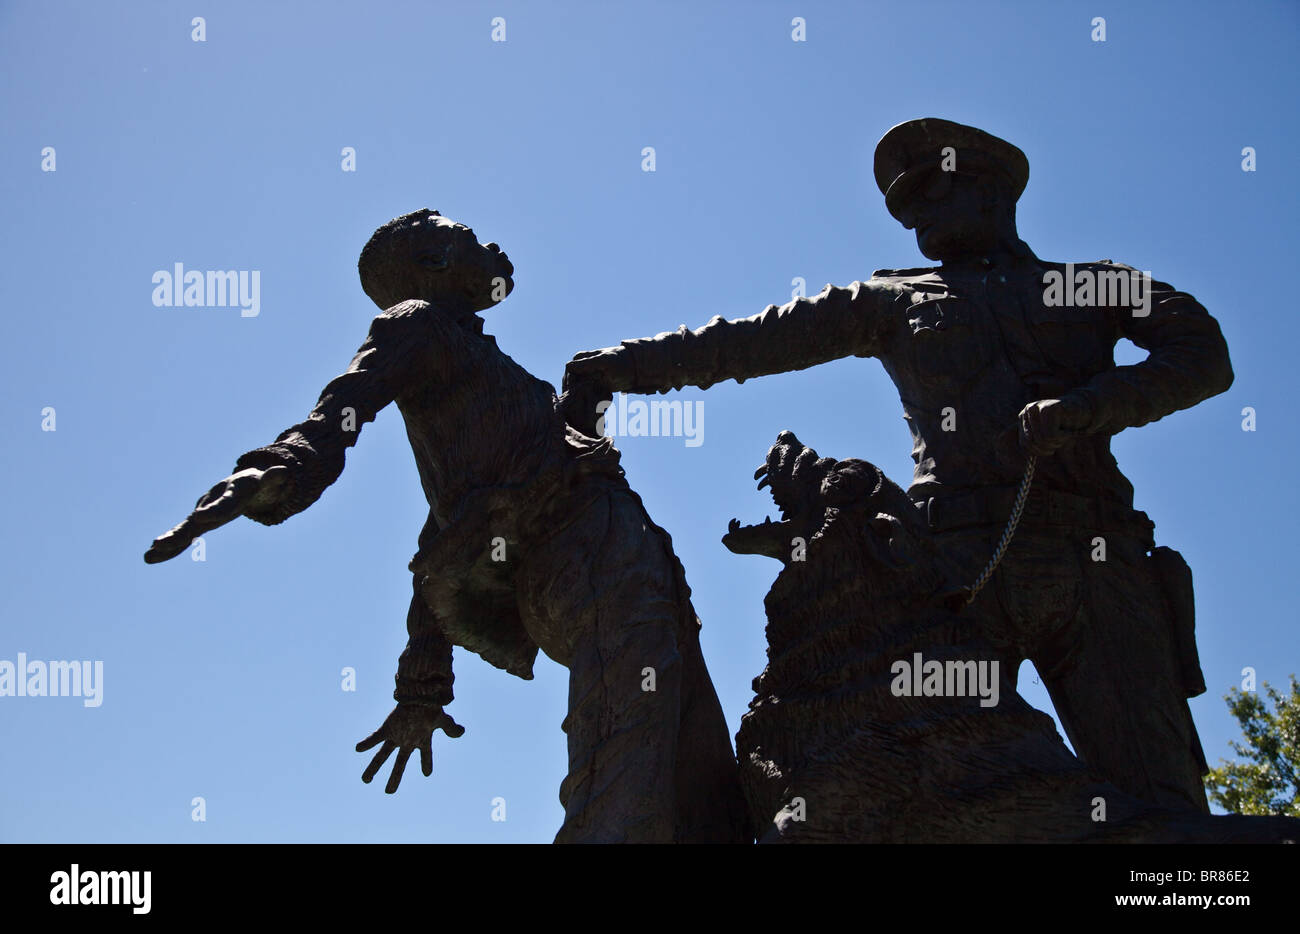 A statue depicting police brutality during the Civil Rights Movement at Kelley Ingram Park in Birmingham, Alabama - Stock Image